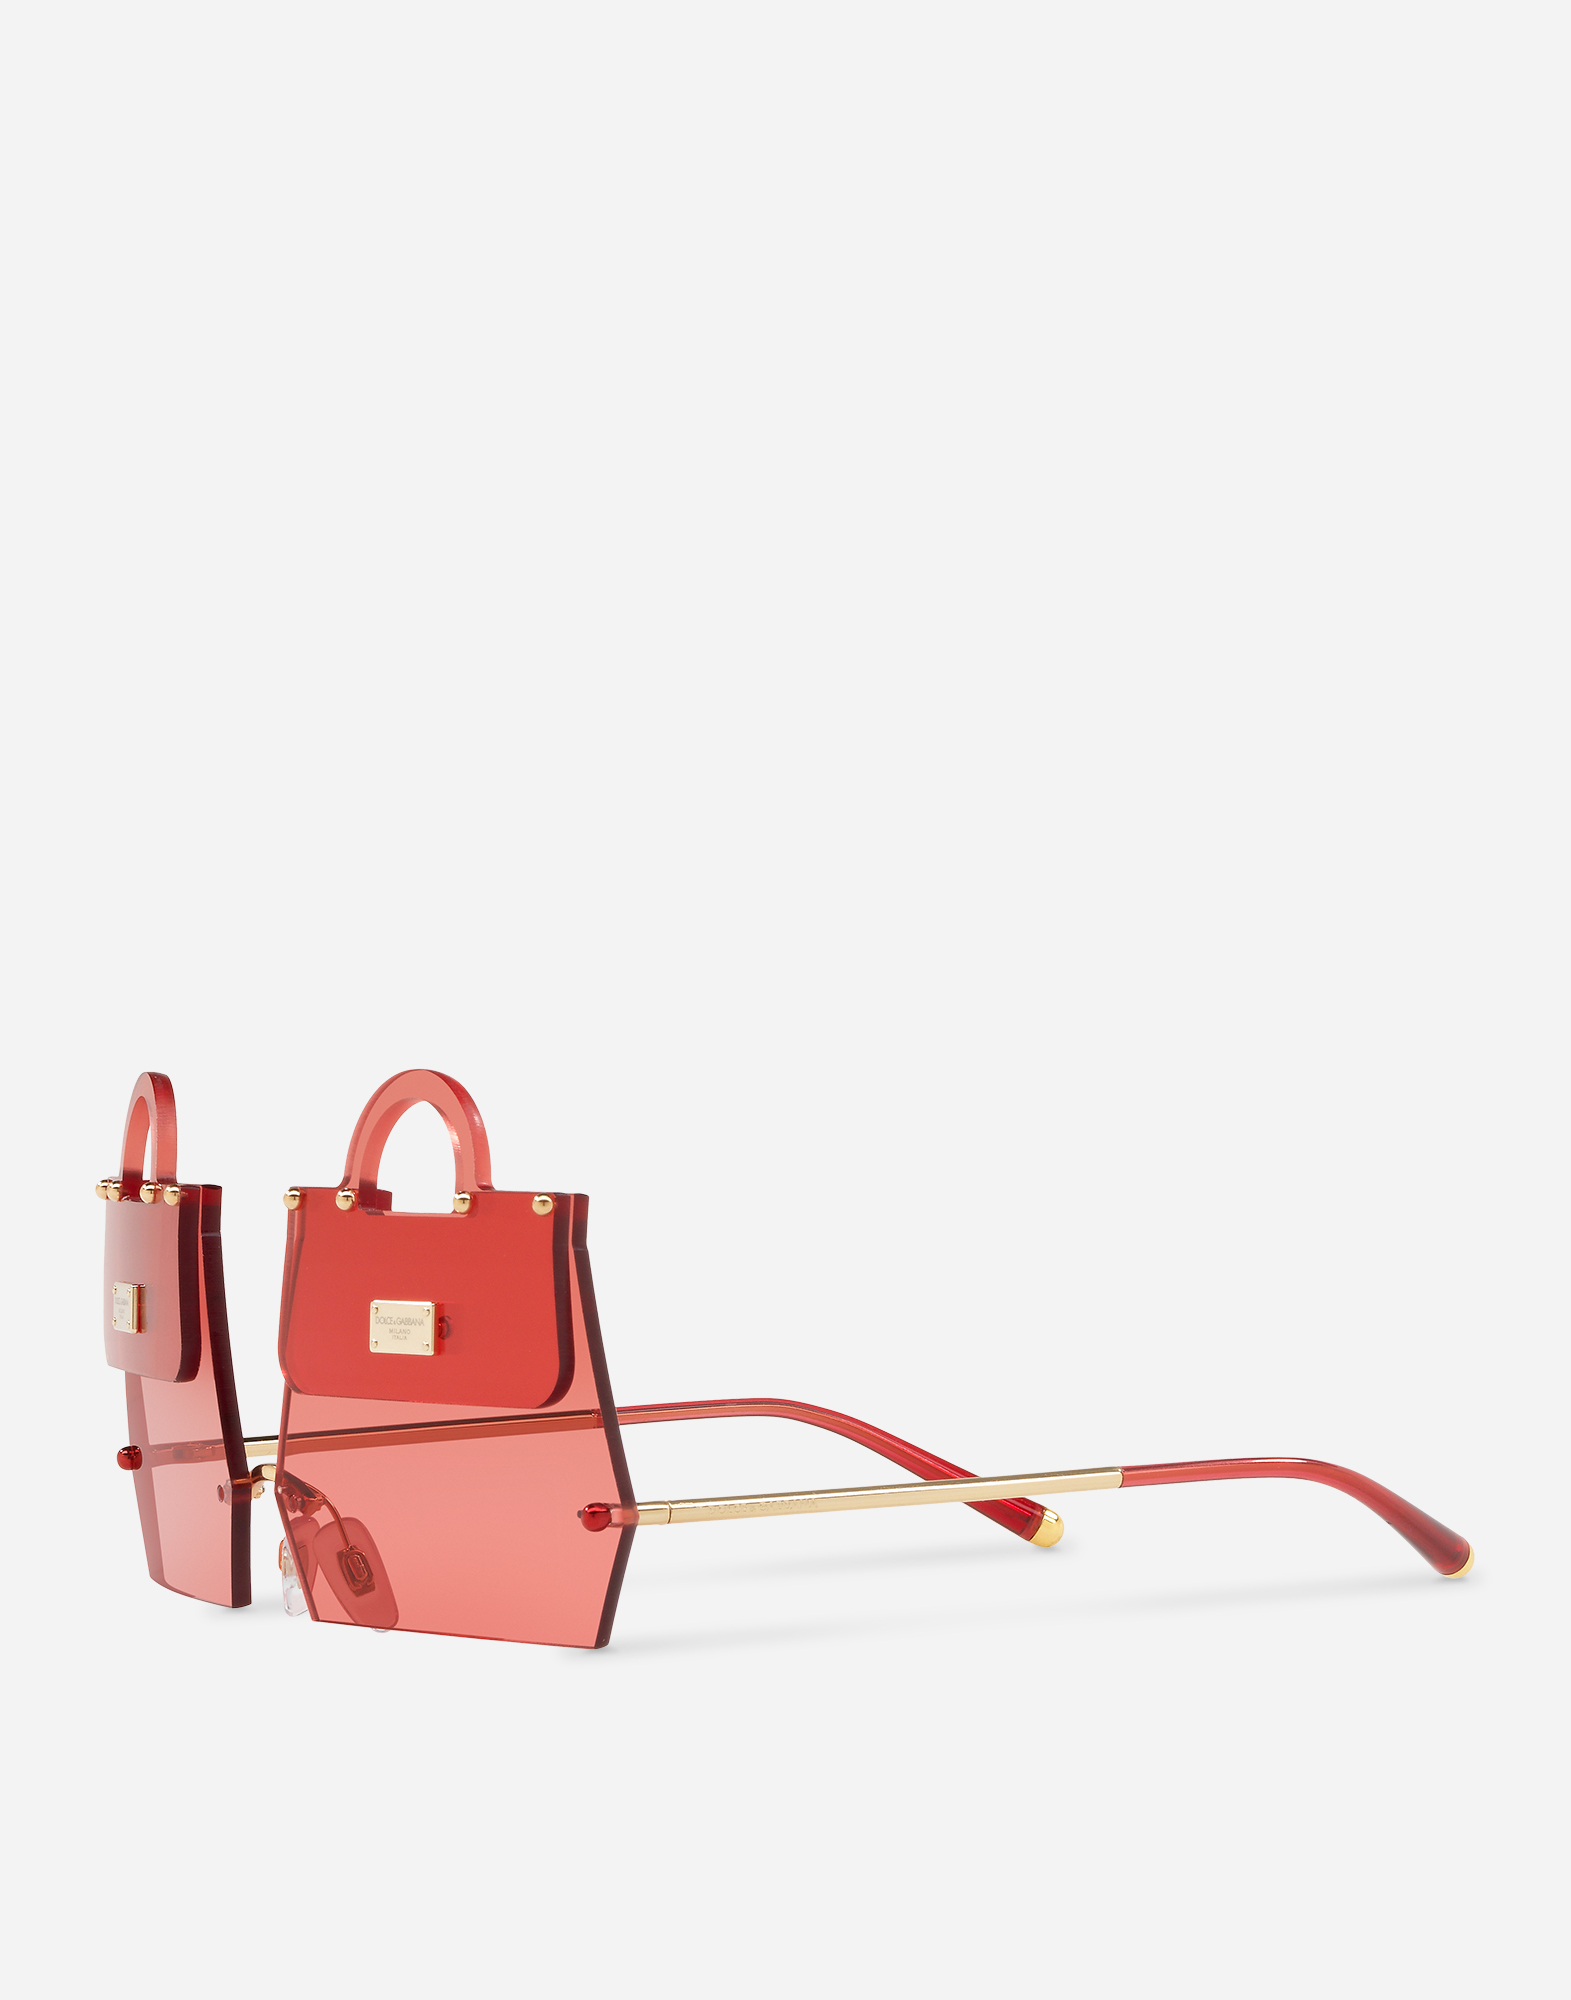 """Dolce & Gabbana METAL SUNGLASSES INSPIRED BY THE """"SICILY"""" BAG"""